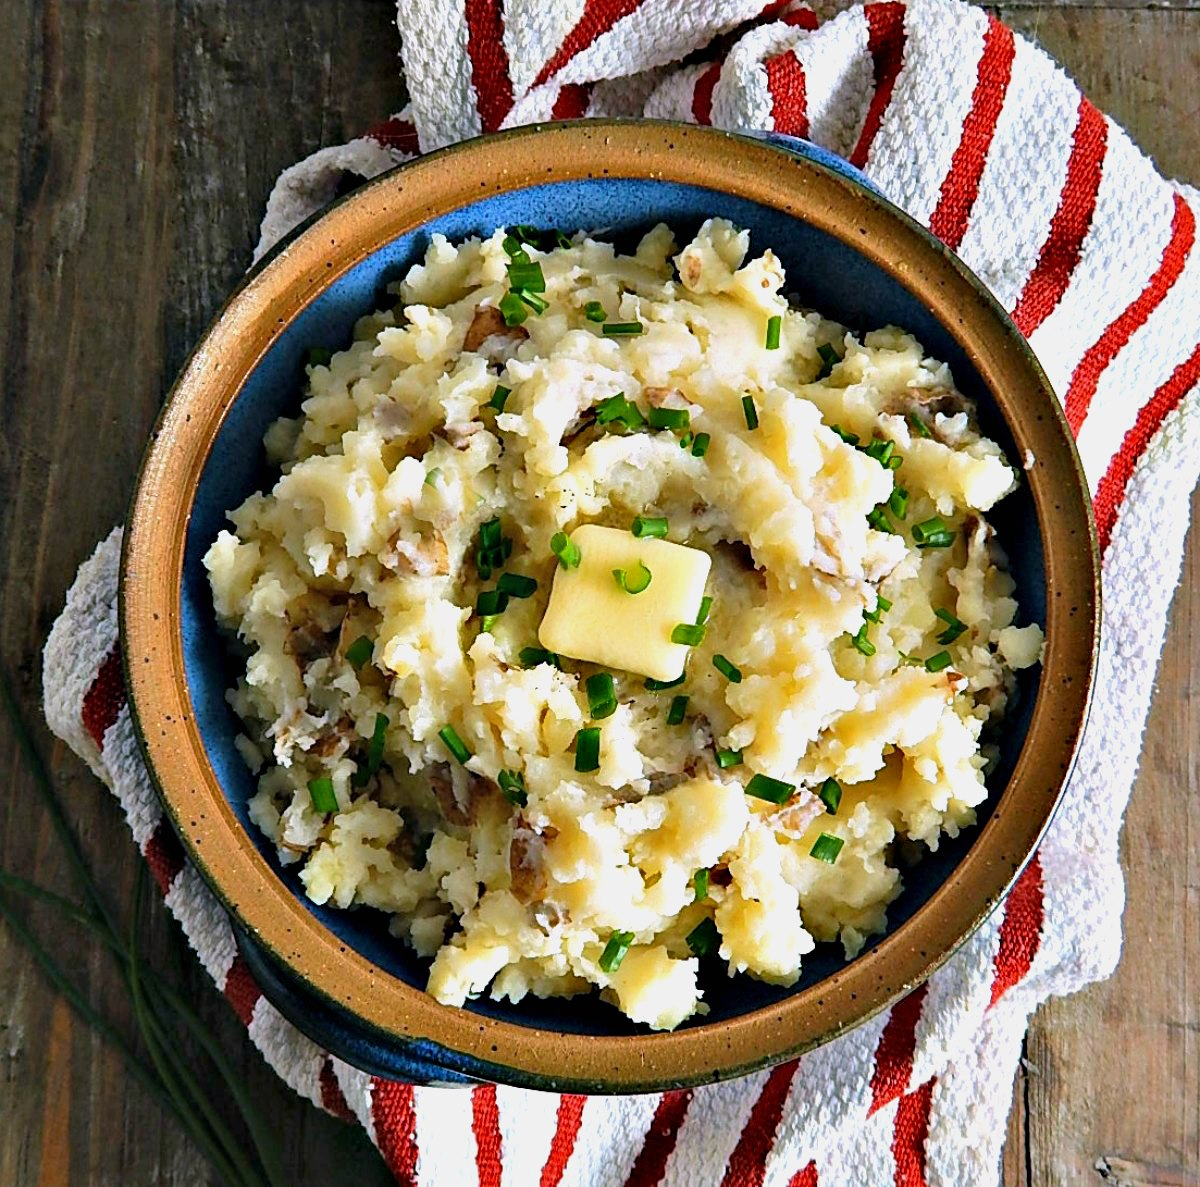 Simple Rustic Mashed Potatoes